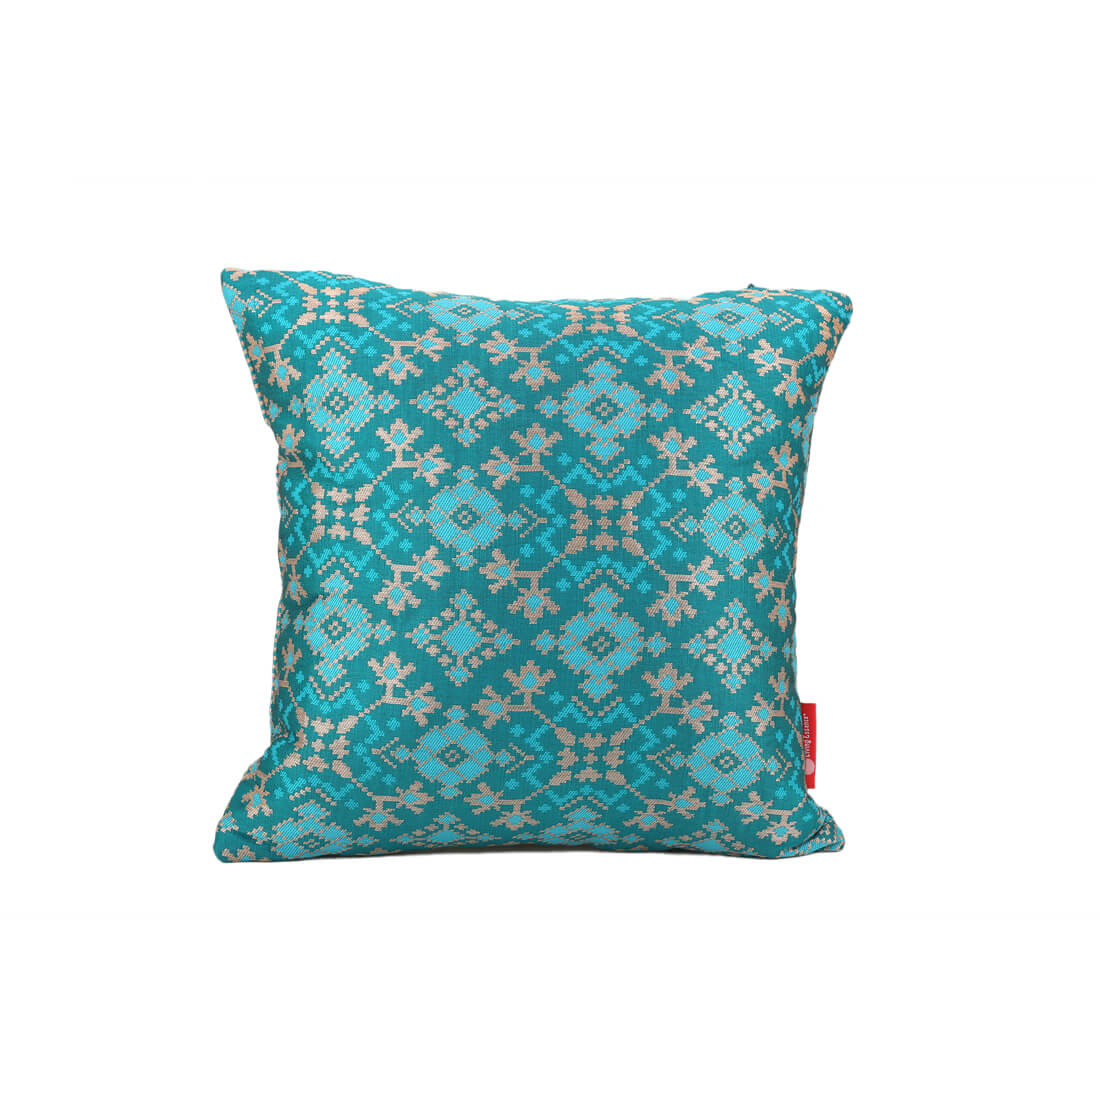 Patola Teal Polyester Cushion Covers in Teal Colour by Living Essence